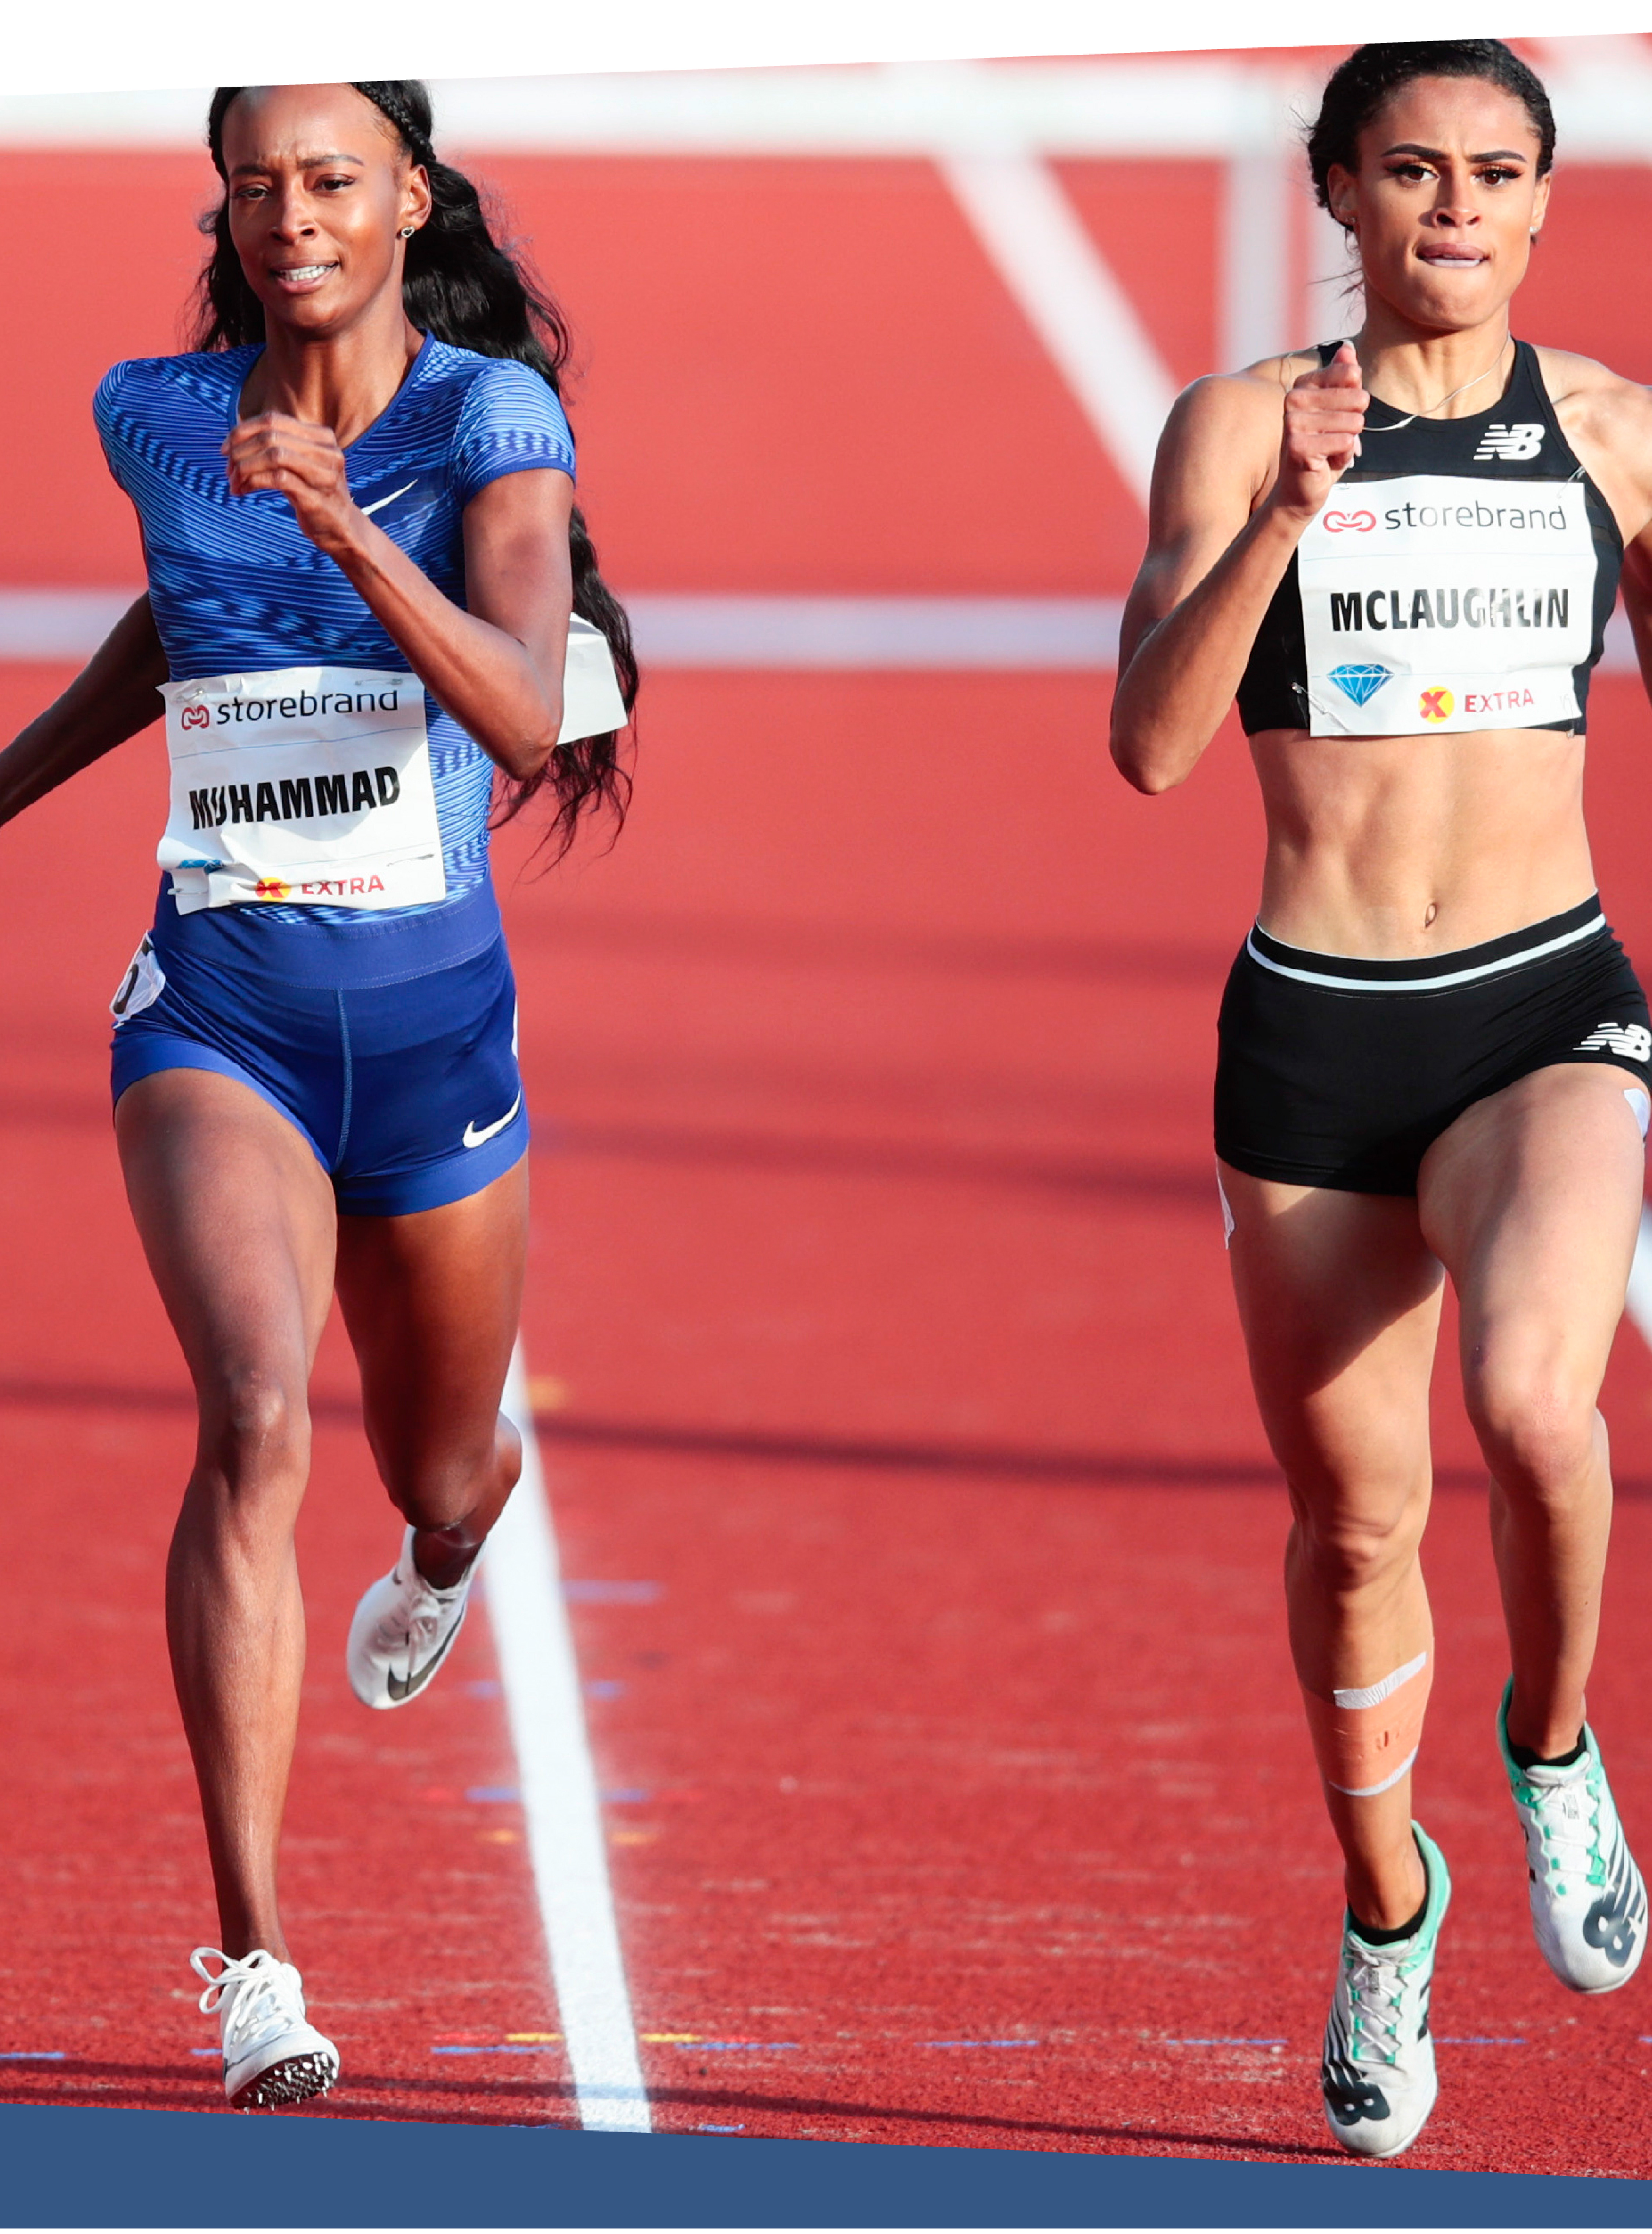 McLaughlin has developed a rivalry with 2016 Olympic gold medal winner Dalilah Muhammad, who set the world record in July.